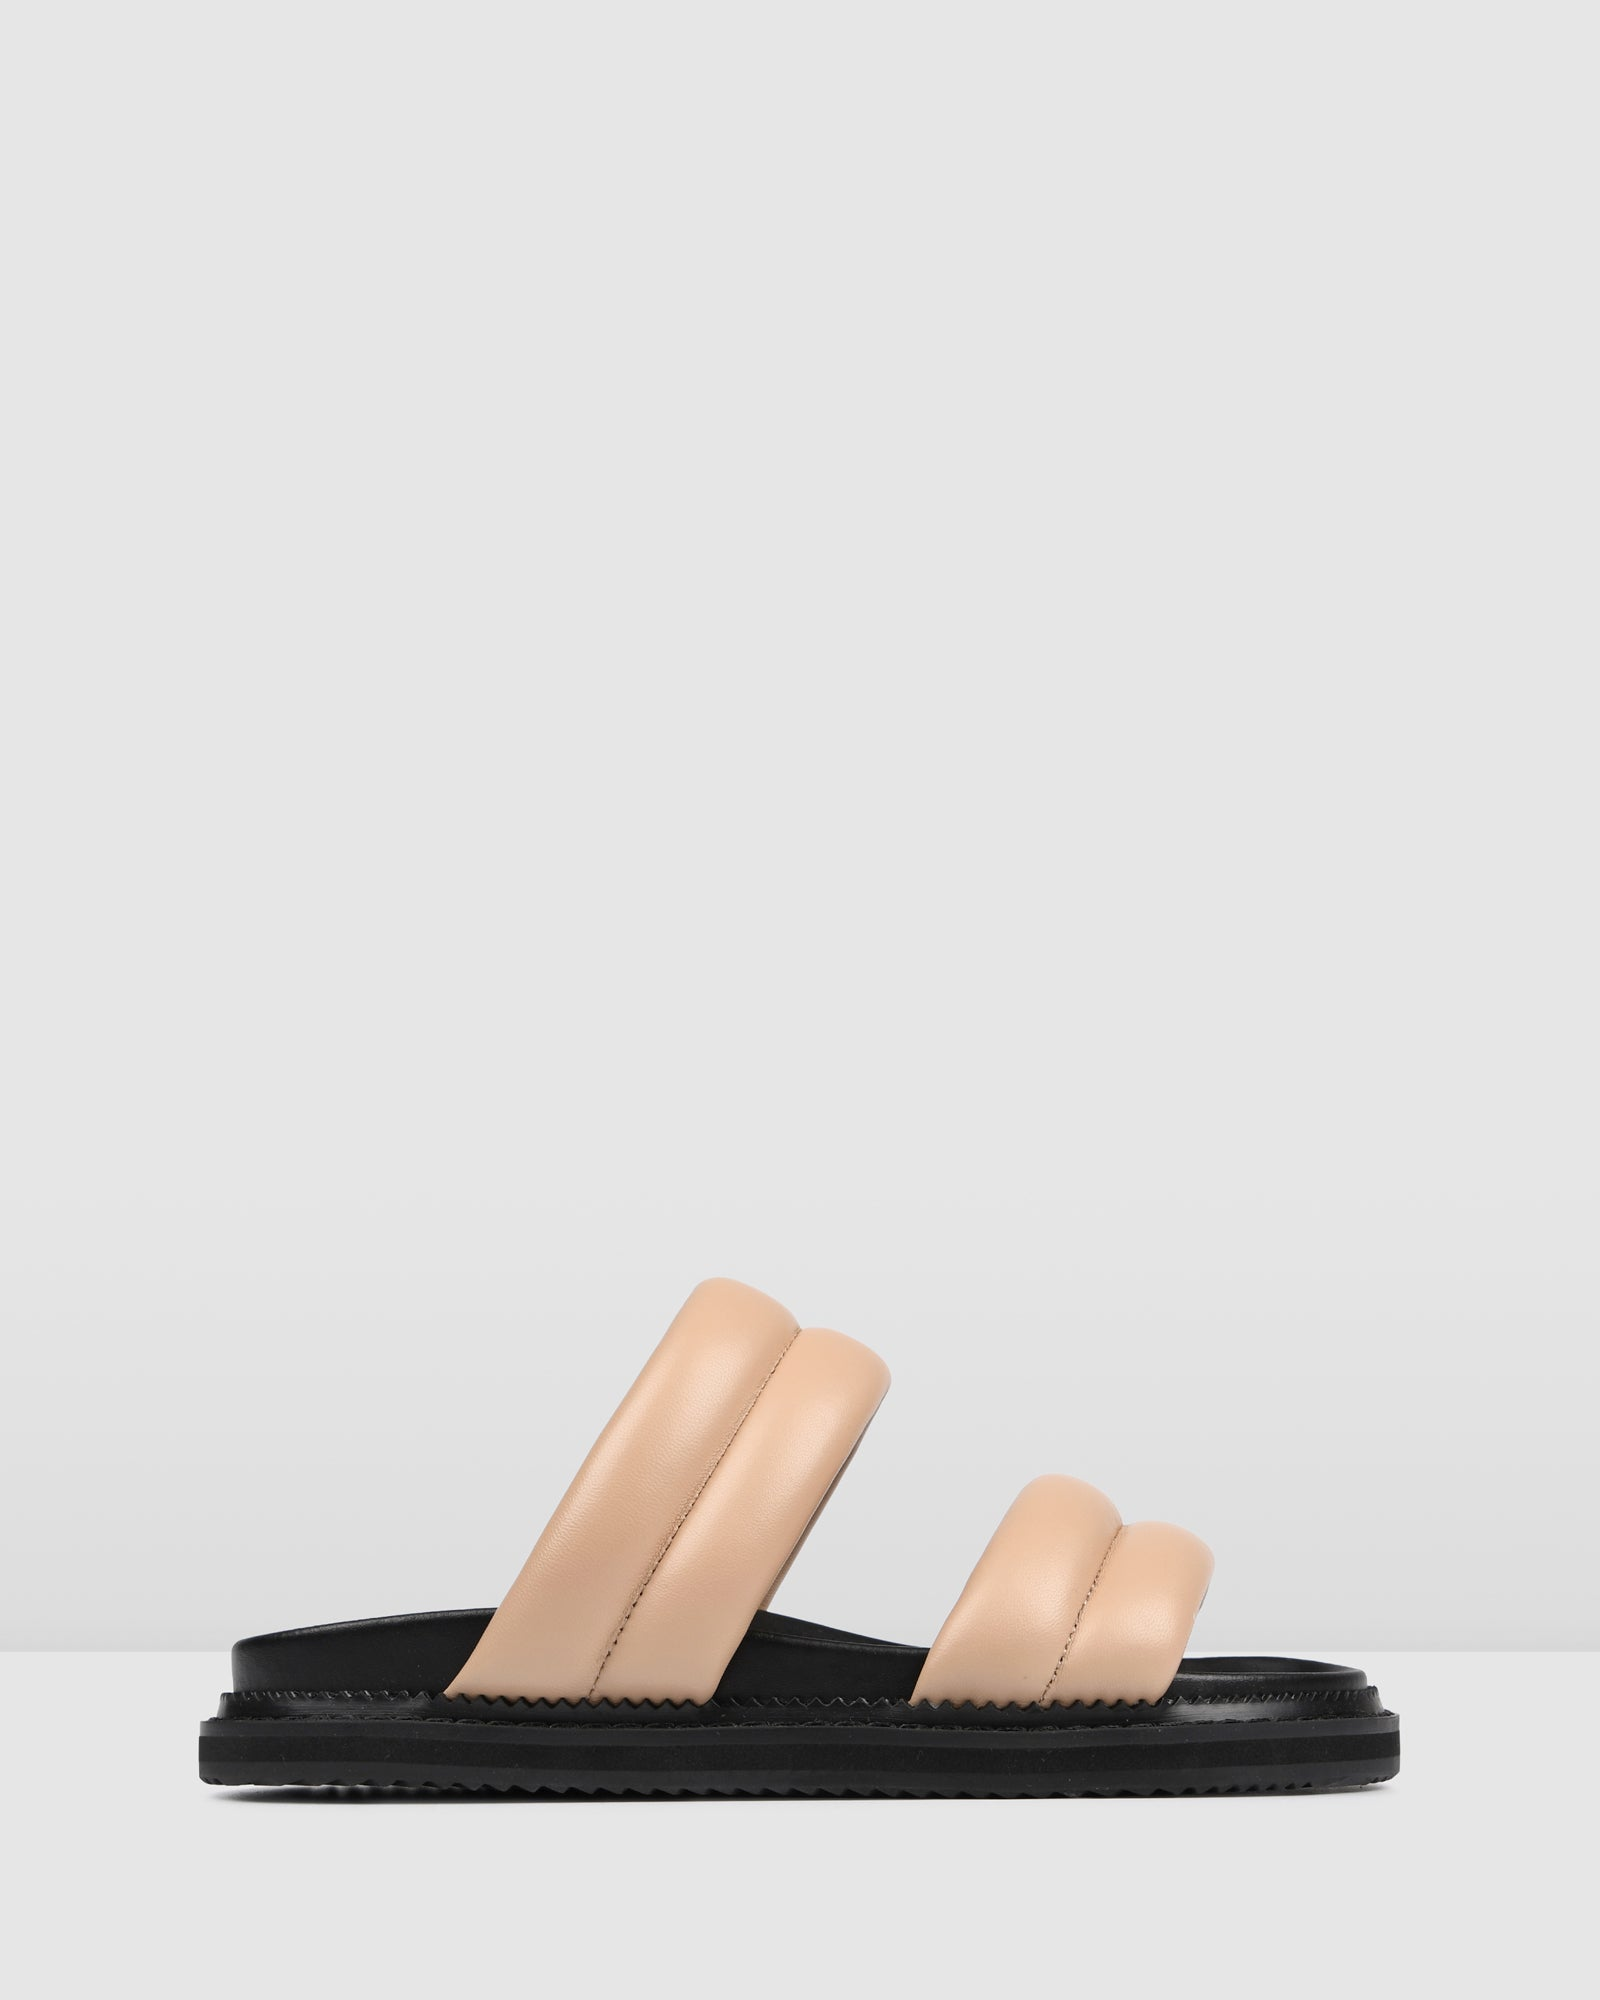 PRINCE FLAT SANDALS NATURAL LEATHER